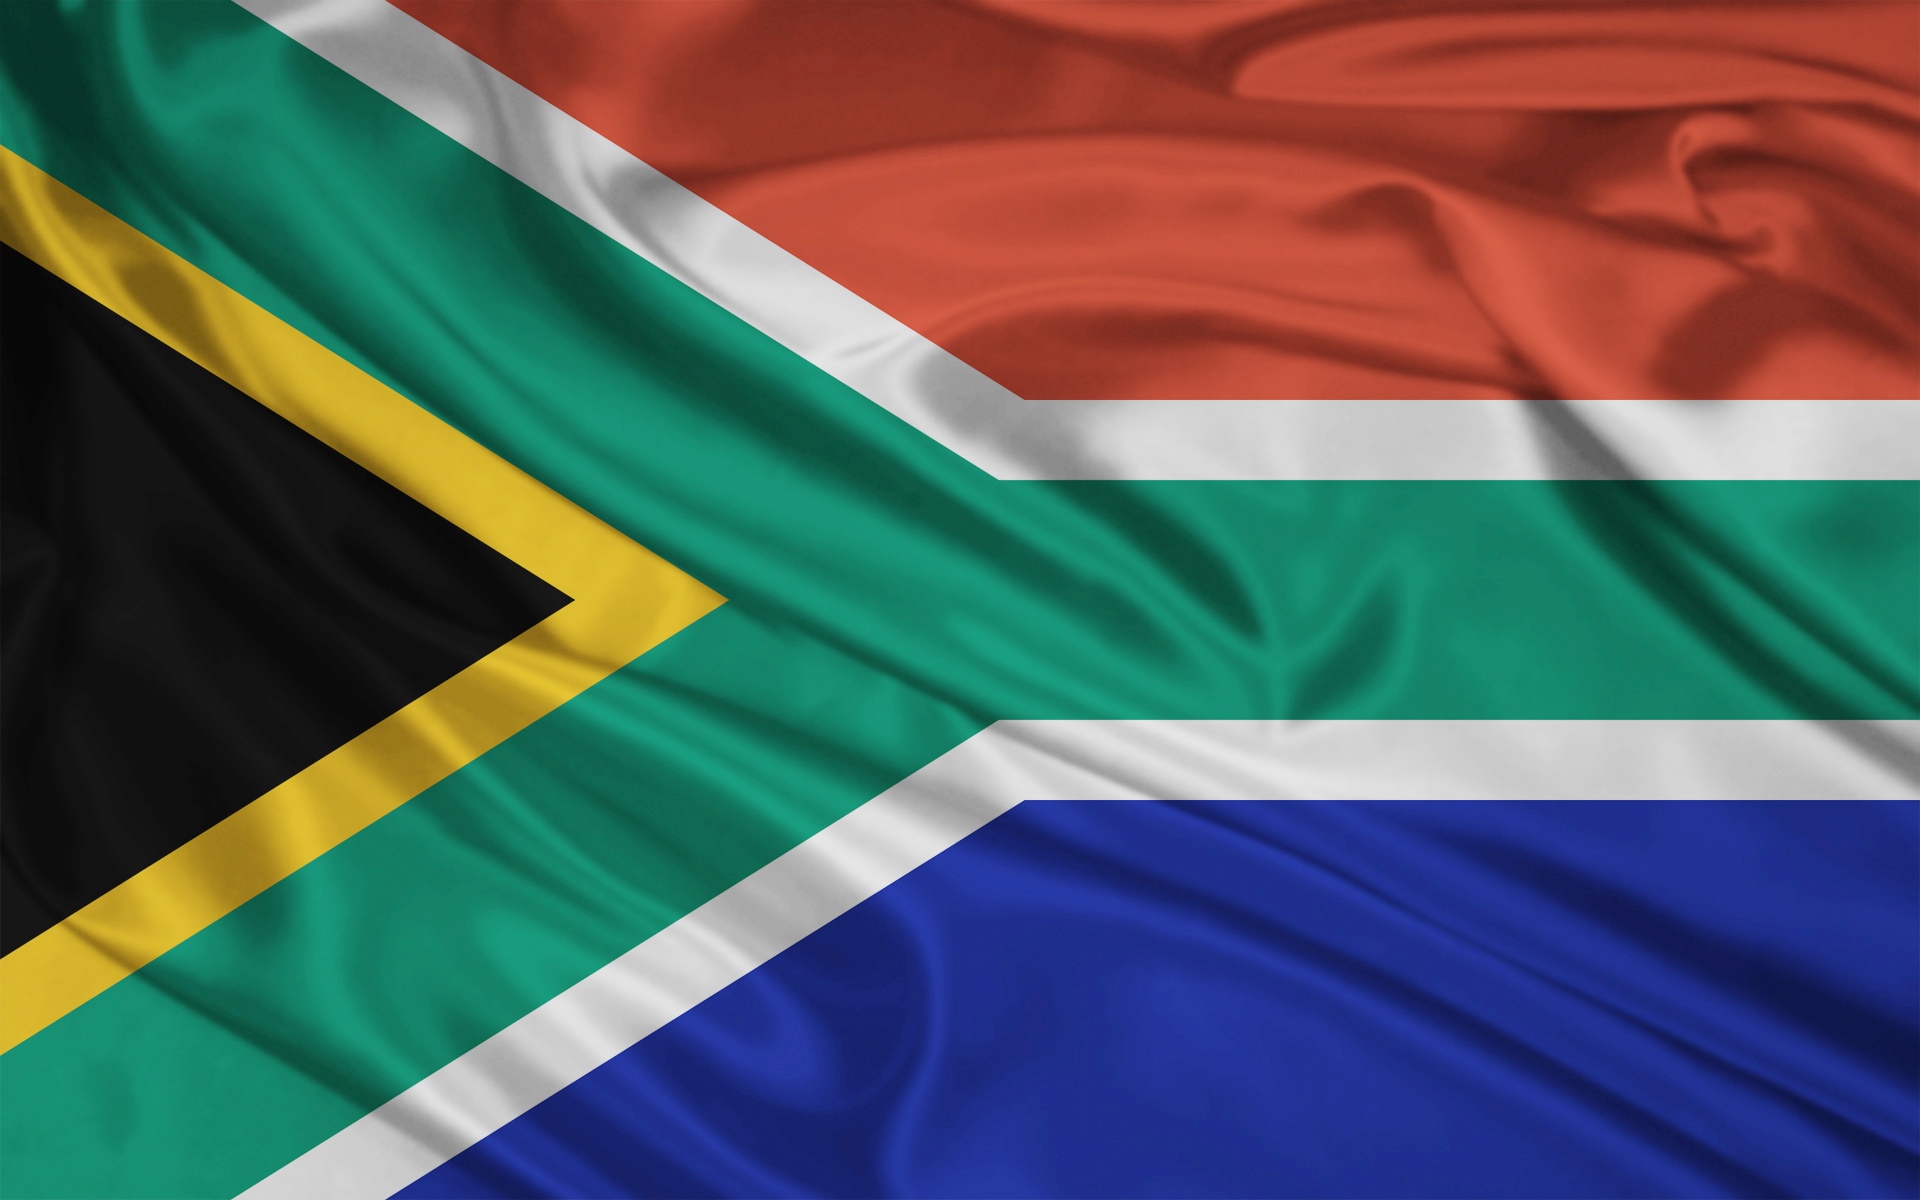 south african flag wallpaper - photo #4